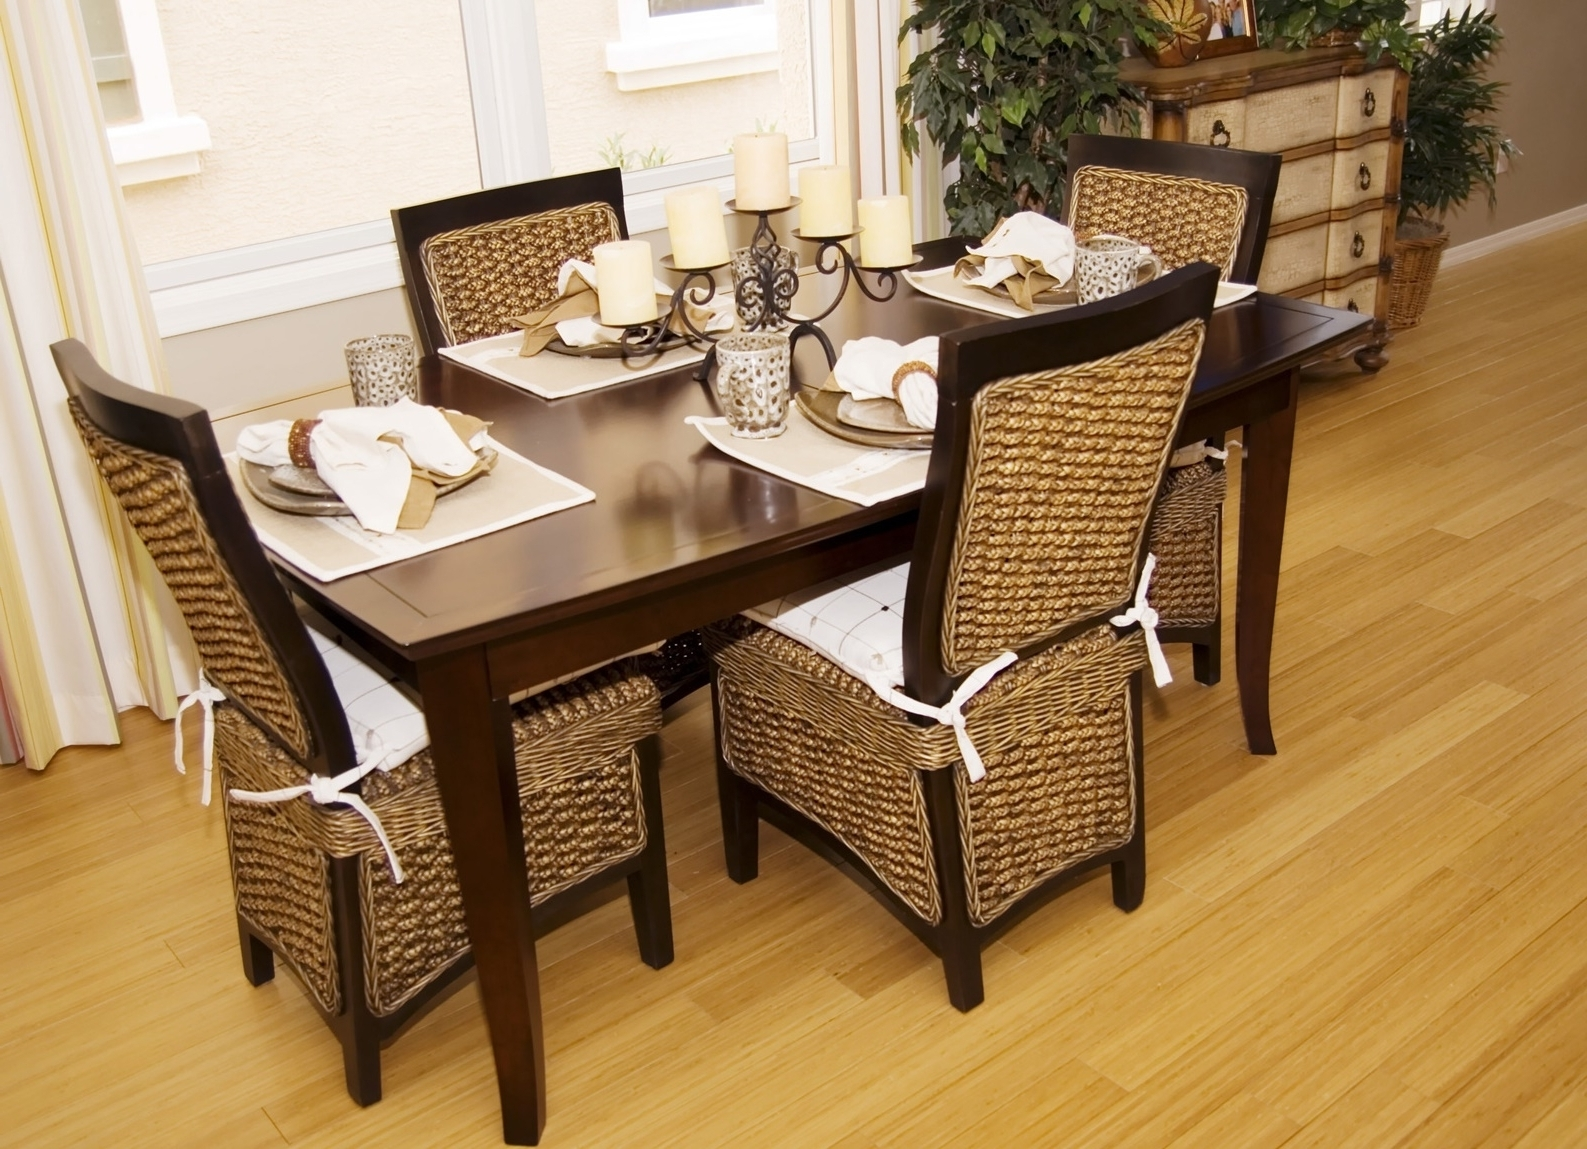 Favorite Dining Room With Farmhouse Table And Wicker Chairs Rustic With With Rattan Dining Tables And Chairs (View 15 of 25)